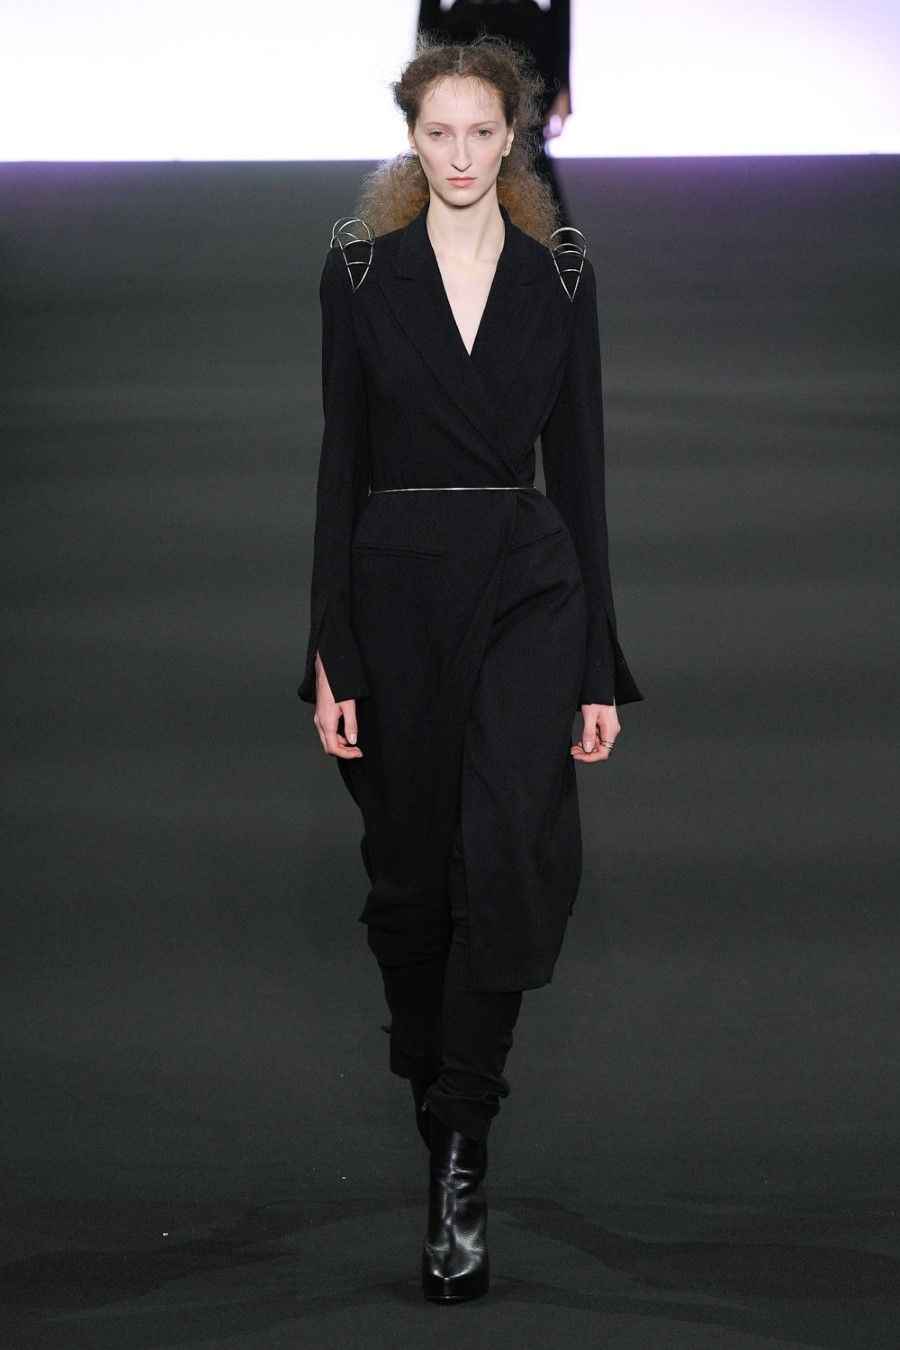 Ann Demeulemeester - Fall Winter 2020 - Paris Fashion Week